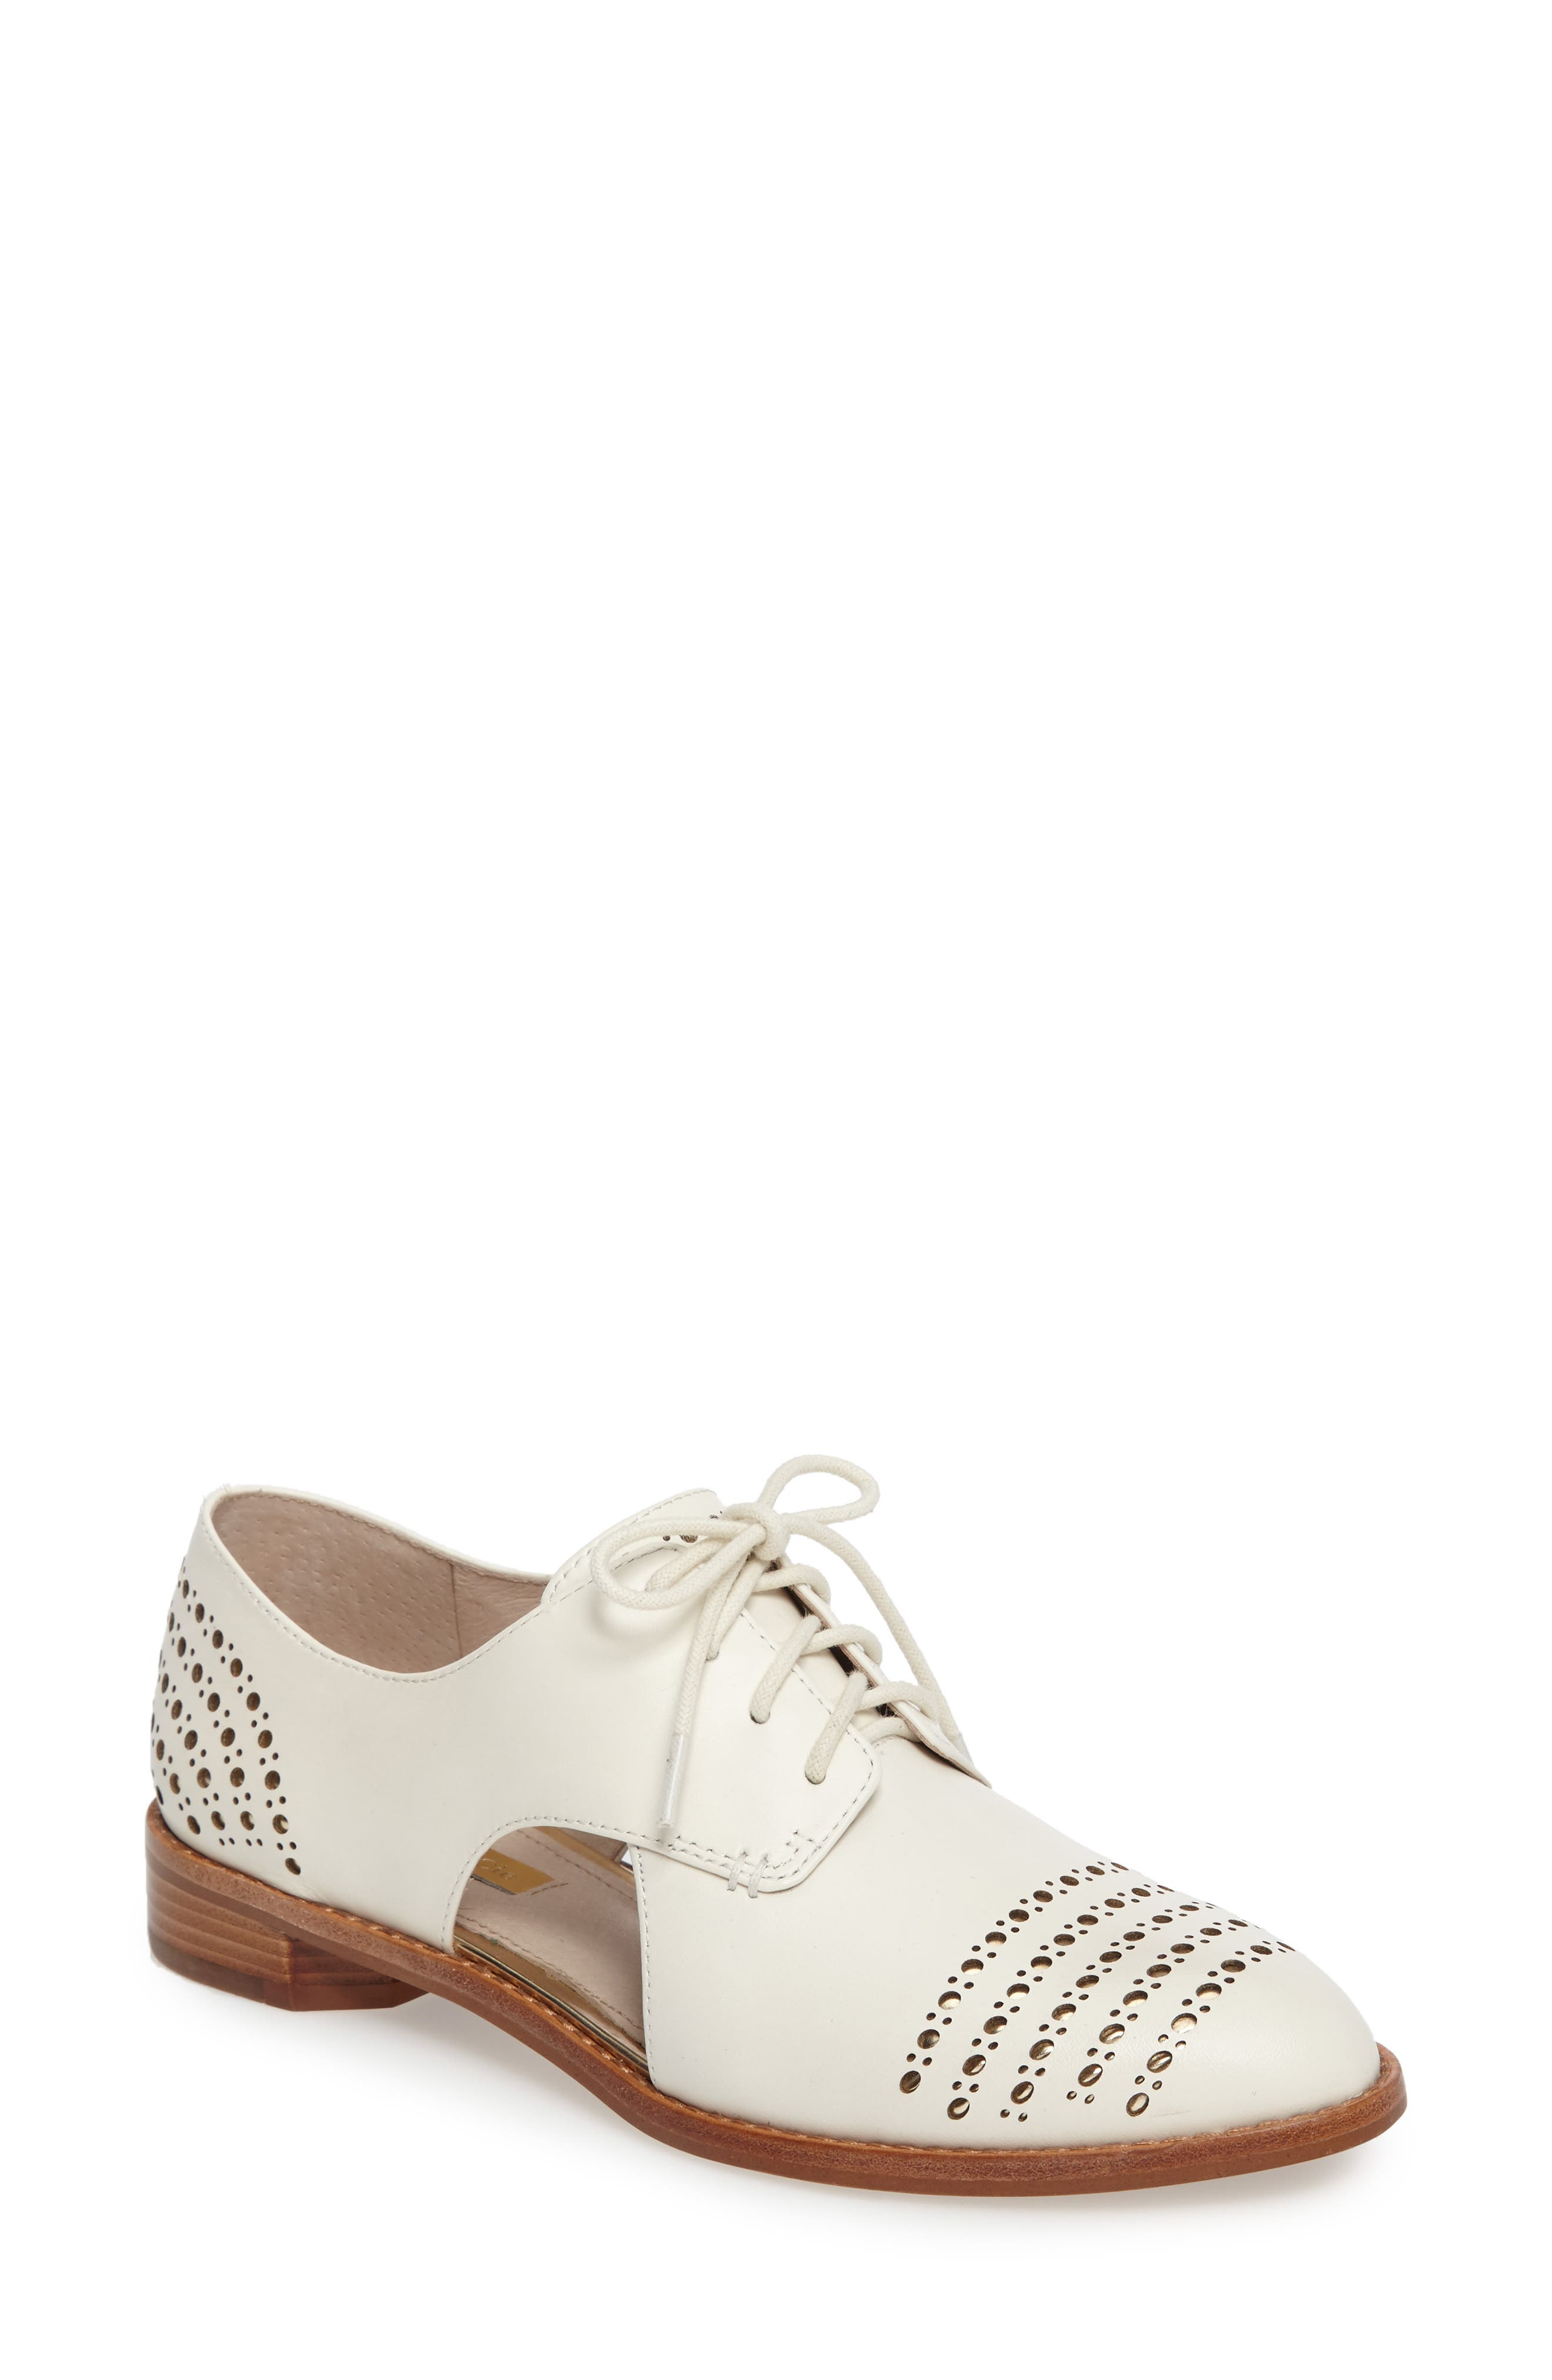 Louise et Cie Felta Cutout Oxford (Women)